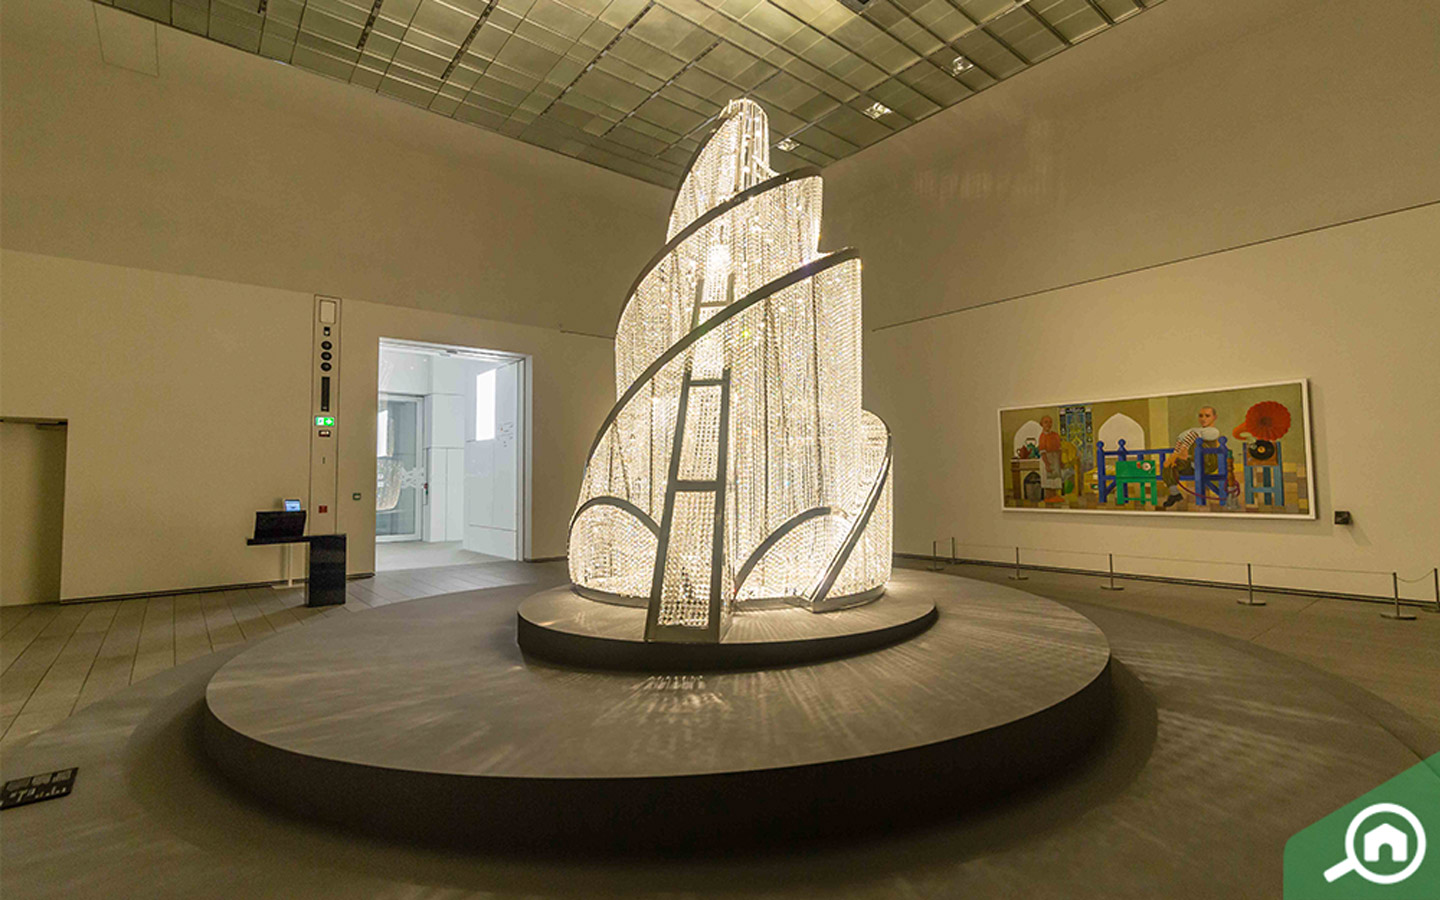 Fountain of Light - Louvre Abu Dhabi